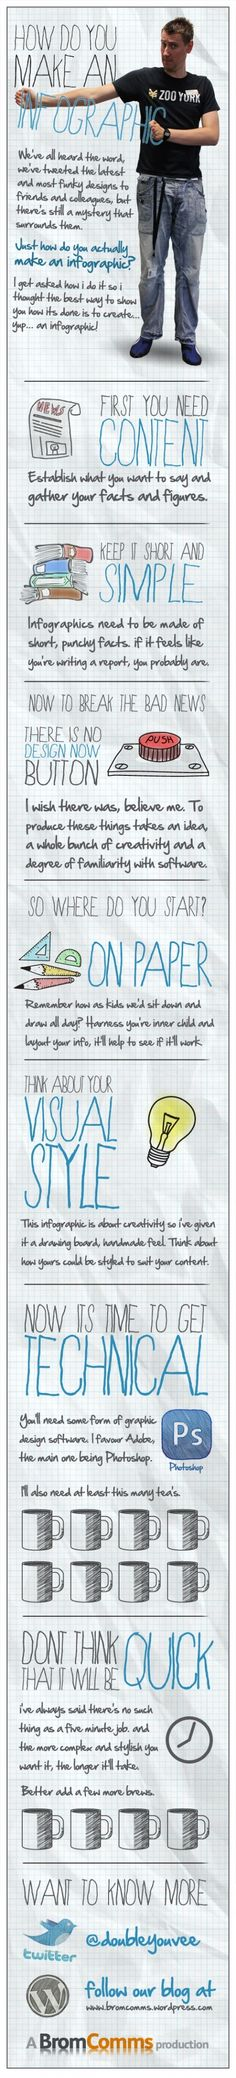 Fun & Simple - How Do You Make an Infographic? from www.bromcomms.wordpress.com